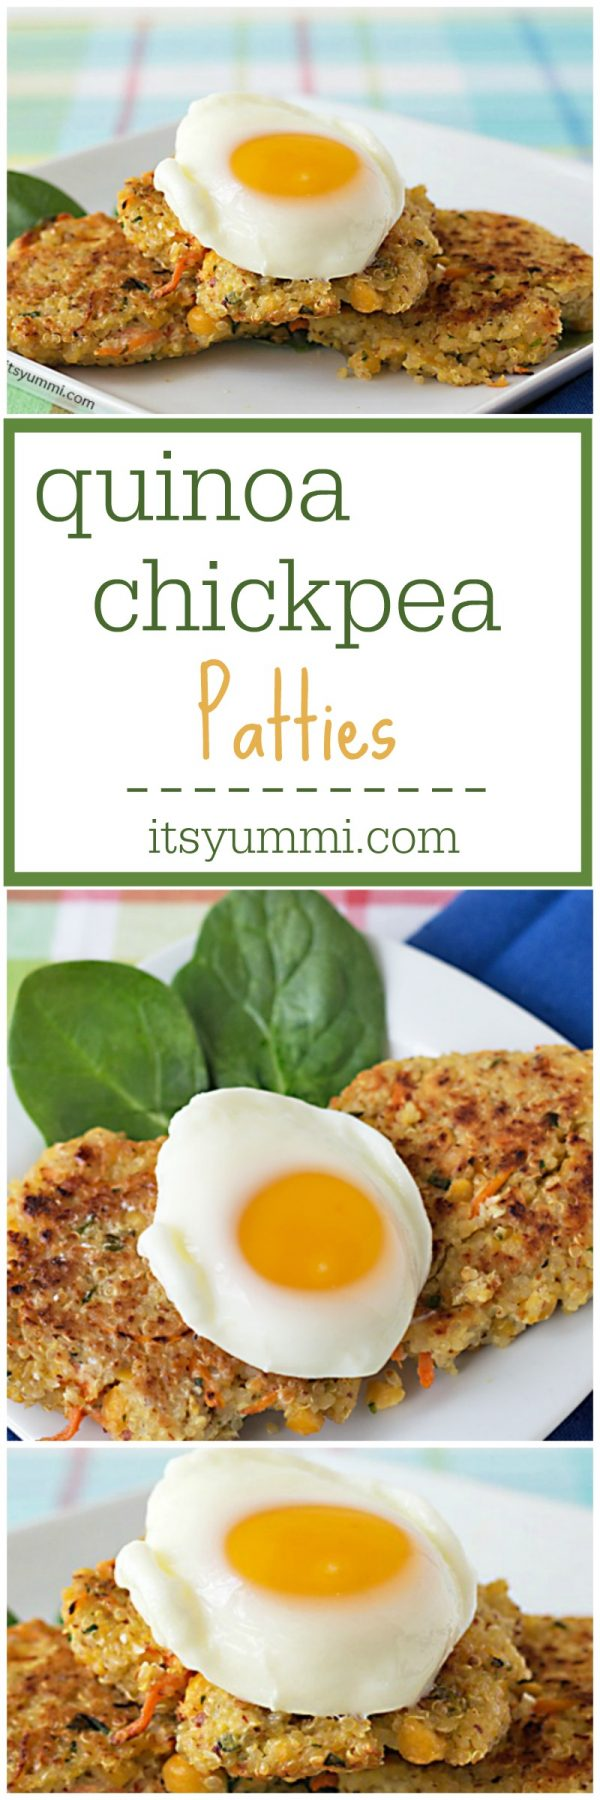 Healthy Recipe ~ Quinoa Chickpea Patties - Full of protein, fiber, and flavor! They're perfect for Meatless Monday. 3 Weight Watchers points per patty! Vegetarian, gluten free, and dairy free. #sidedish #vegetarian #weightwatchers